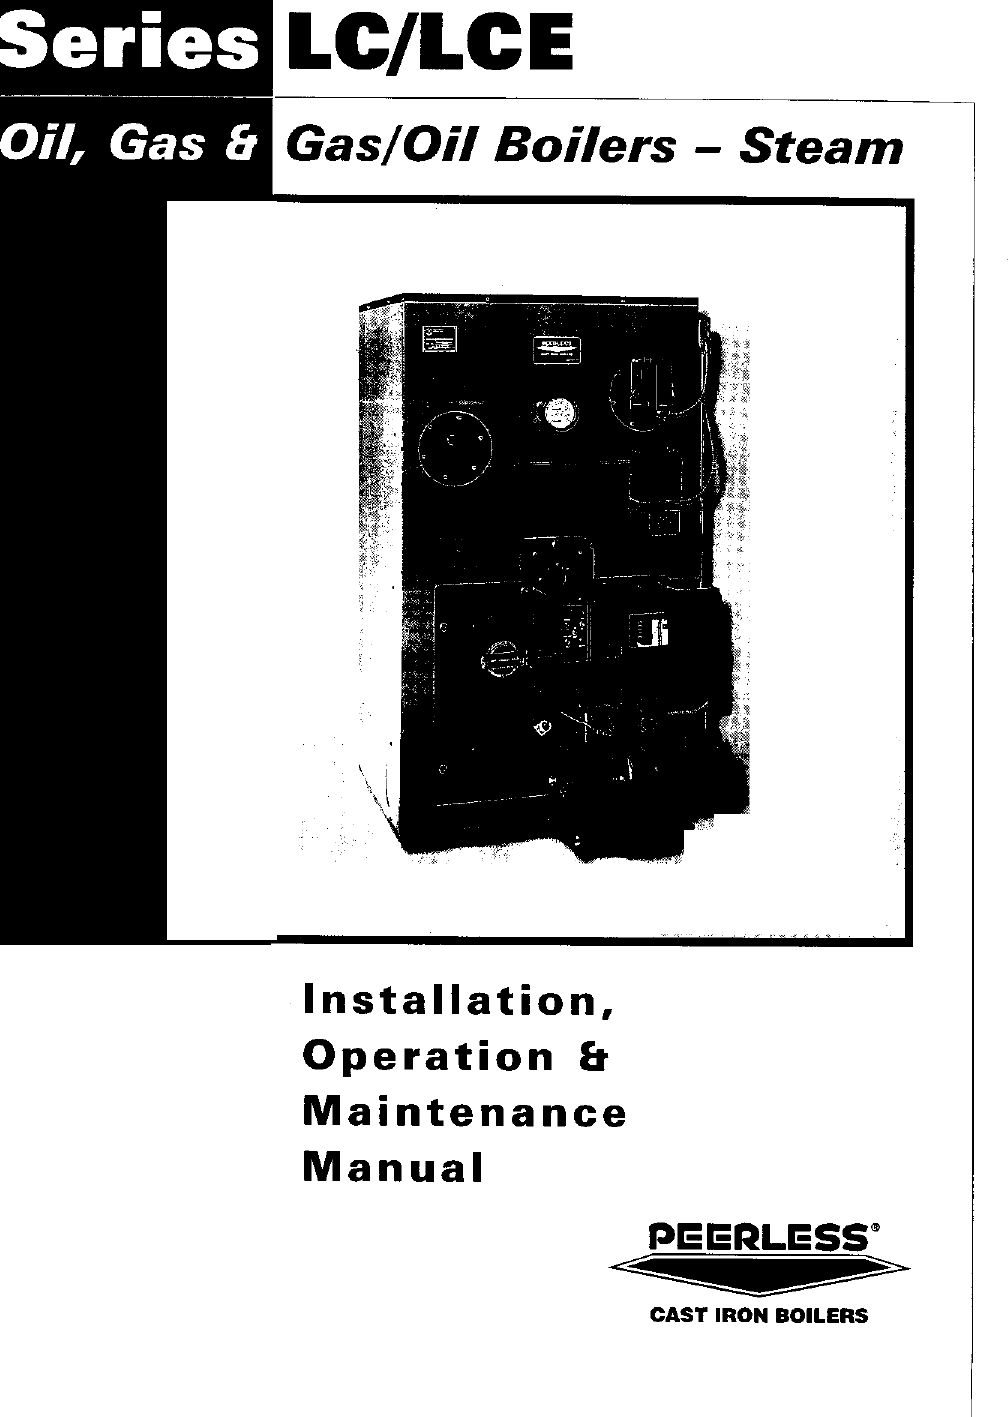 Two Story Wet Vents Manual Guide